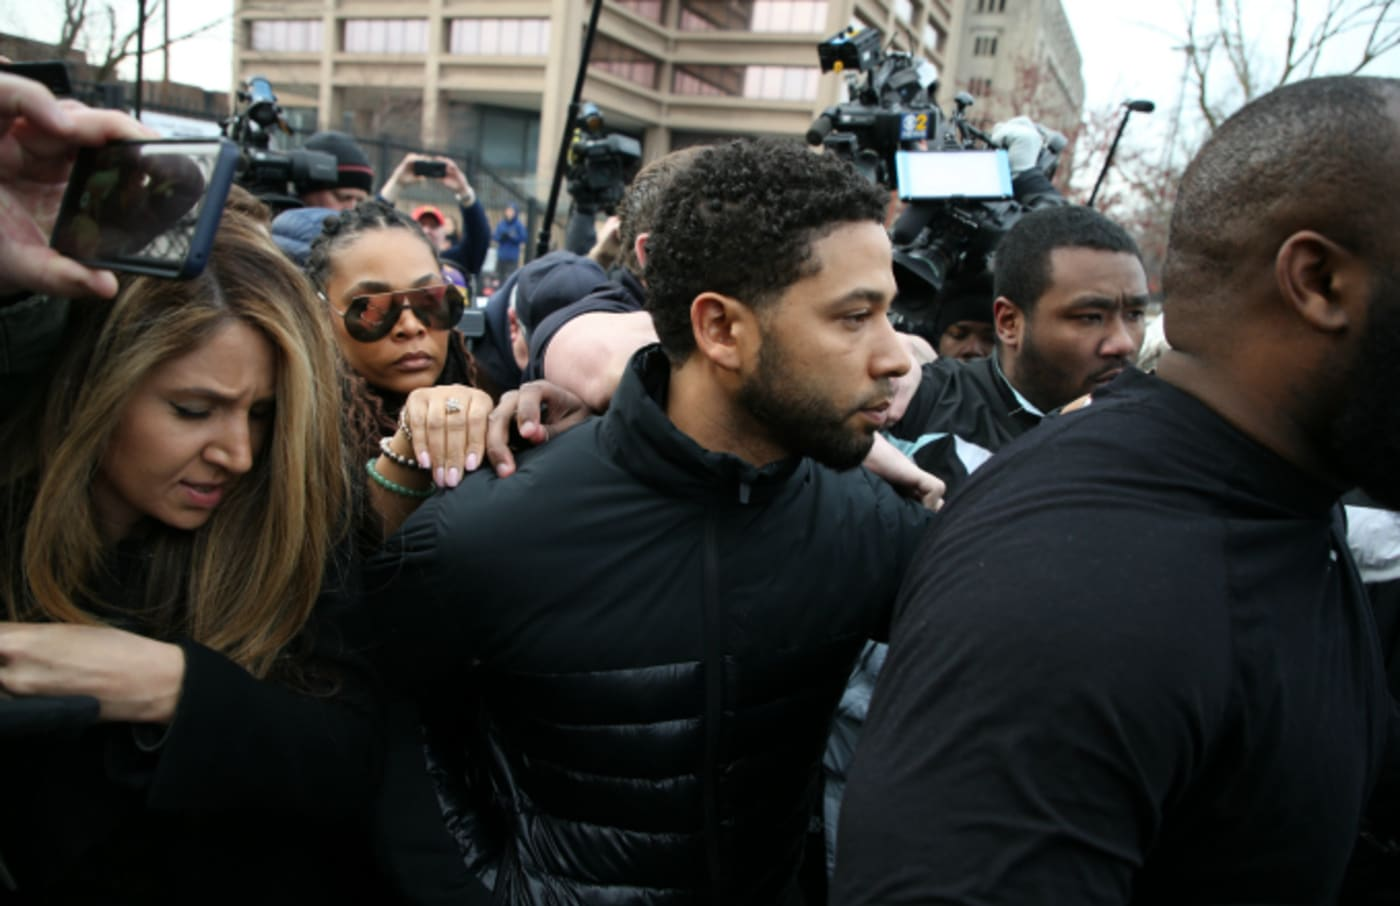 Jussie Smollett leaves the Cook County Jail